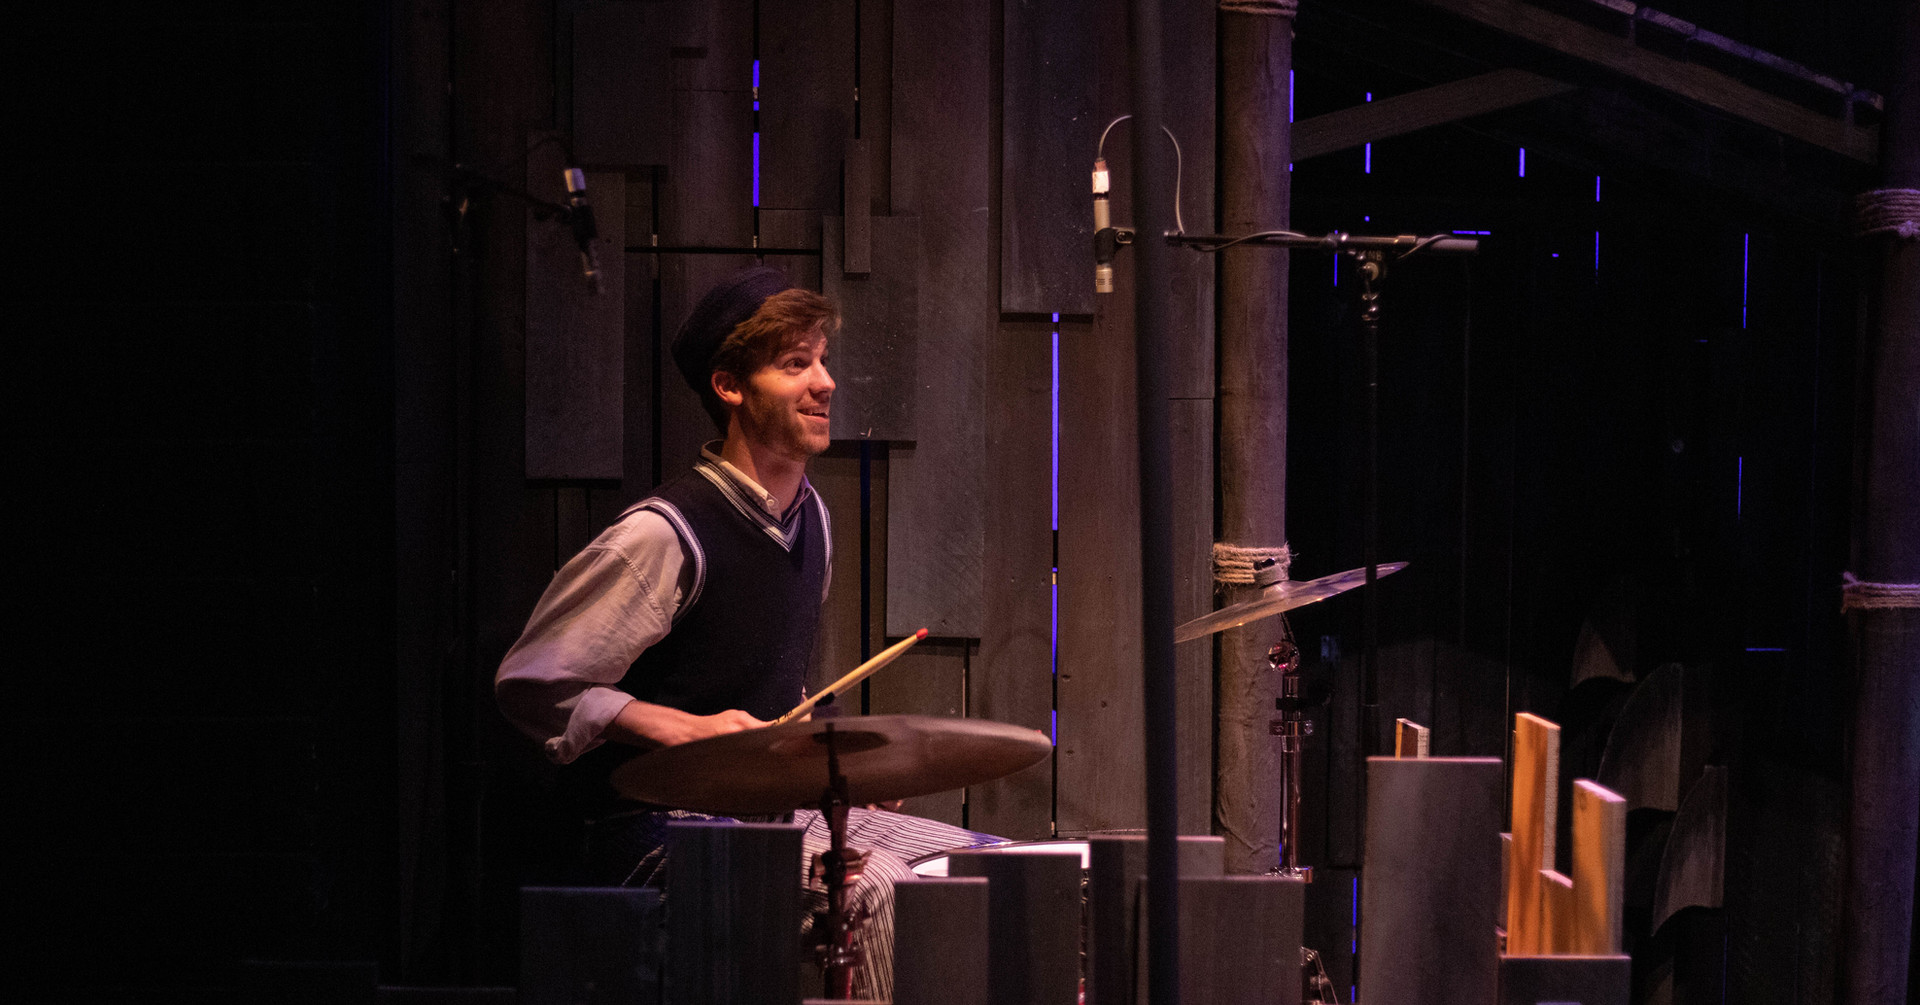 Percussionist - THE OLD MAN AND THE OLD MOON